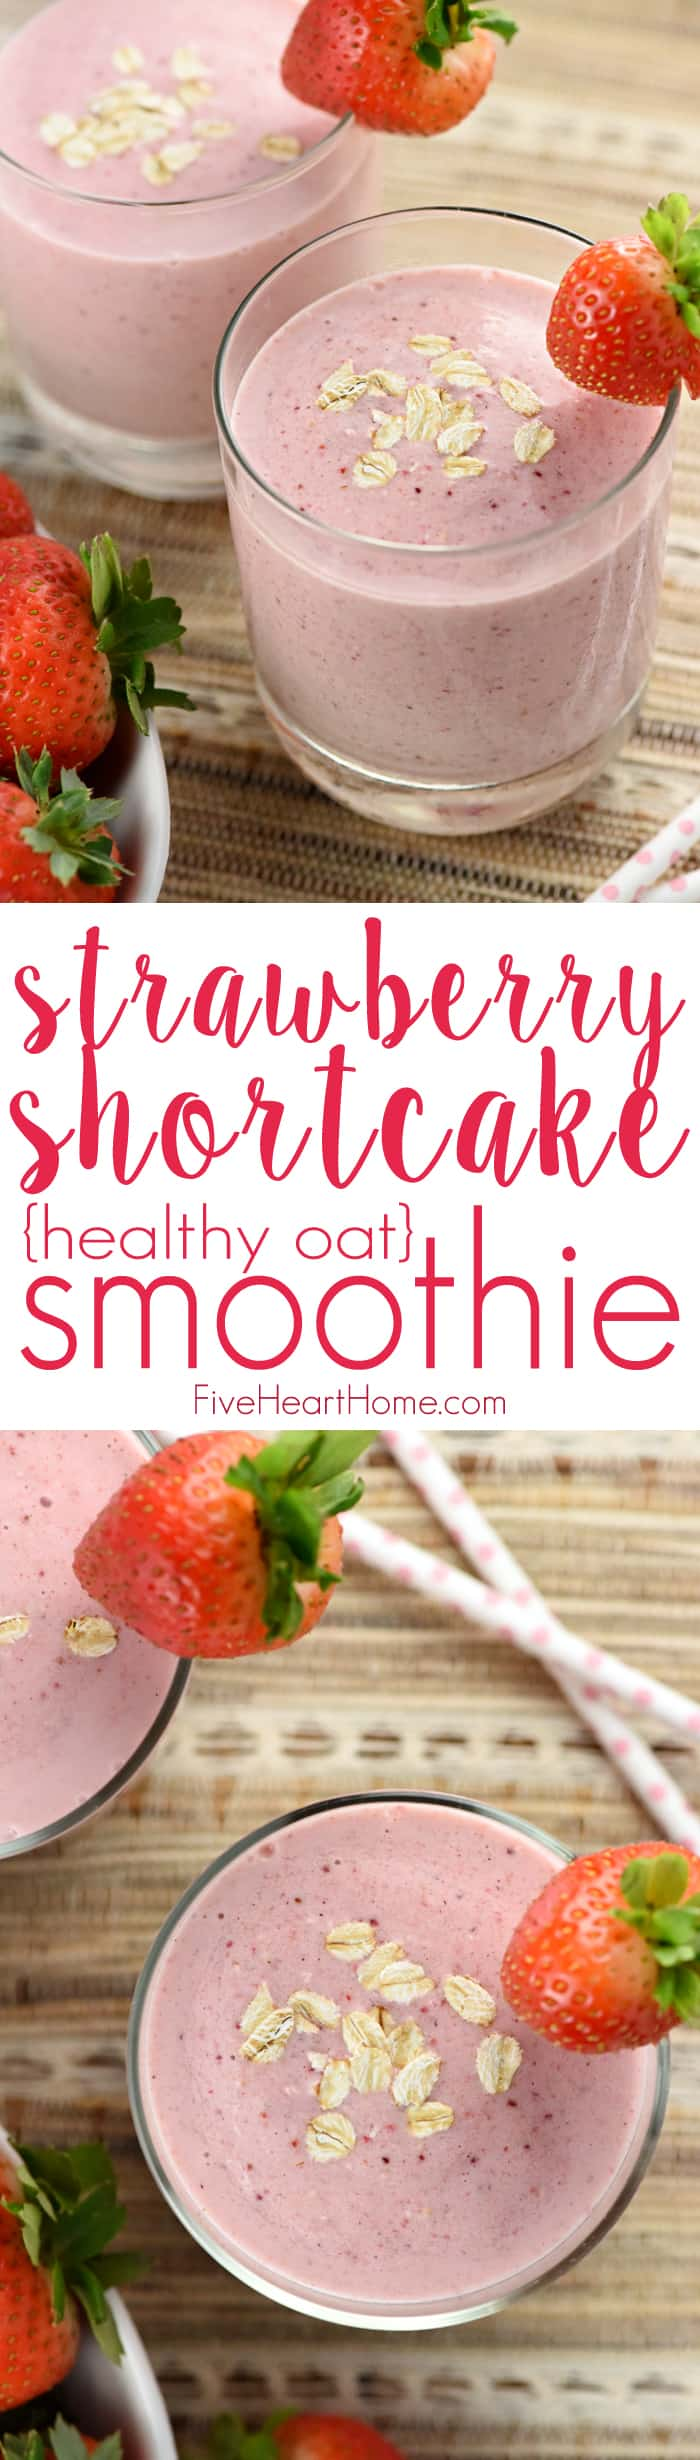 Strawberry Shortcake Smoothie Collage with Text Overlay